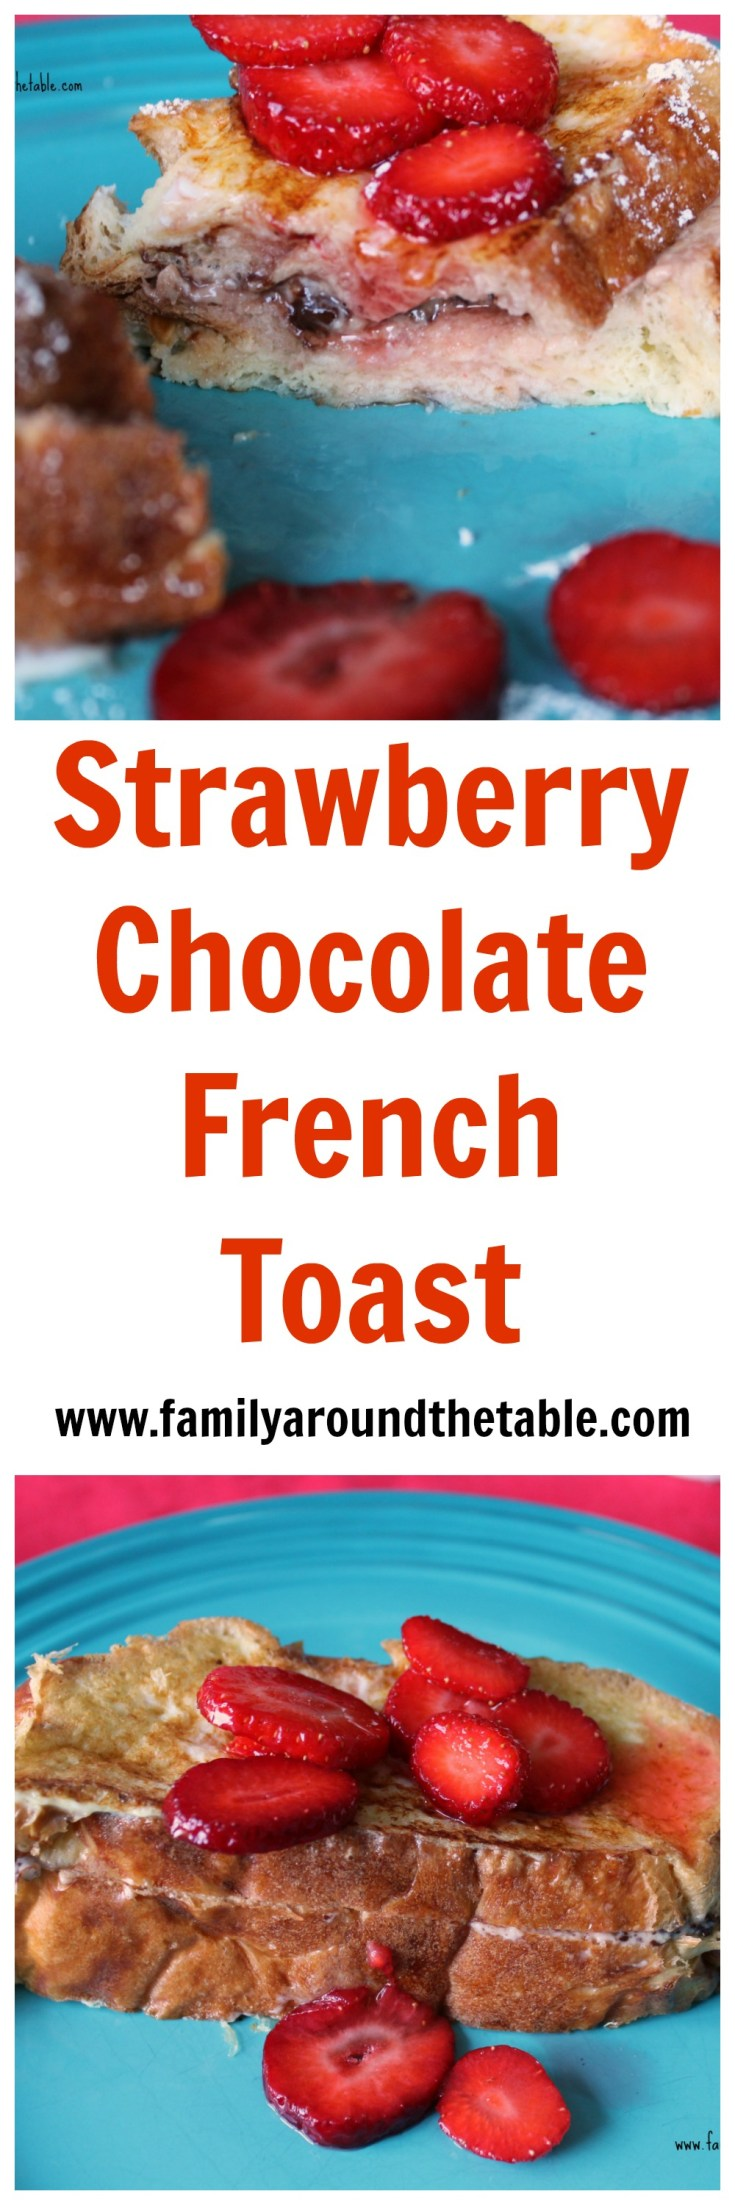 Strawberry Chocolate French Toast elevates your brunch game.